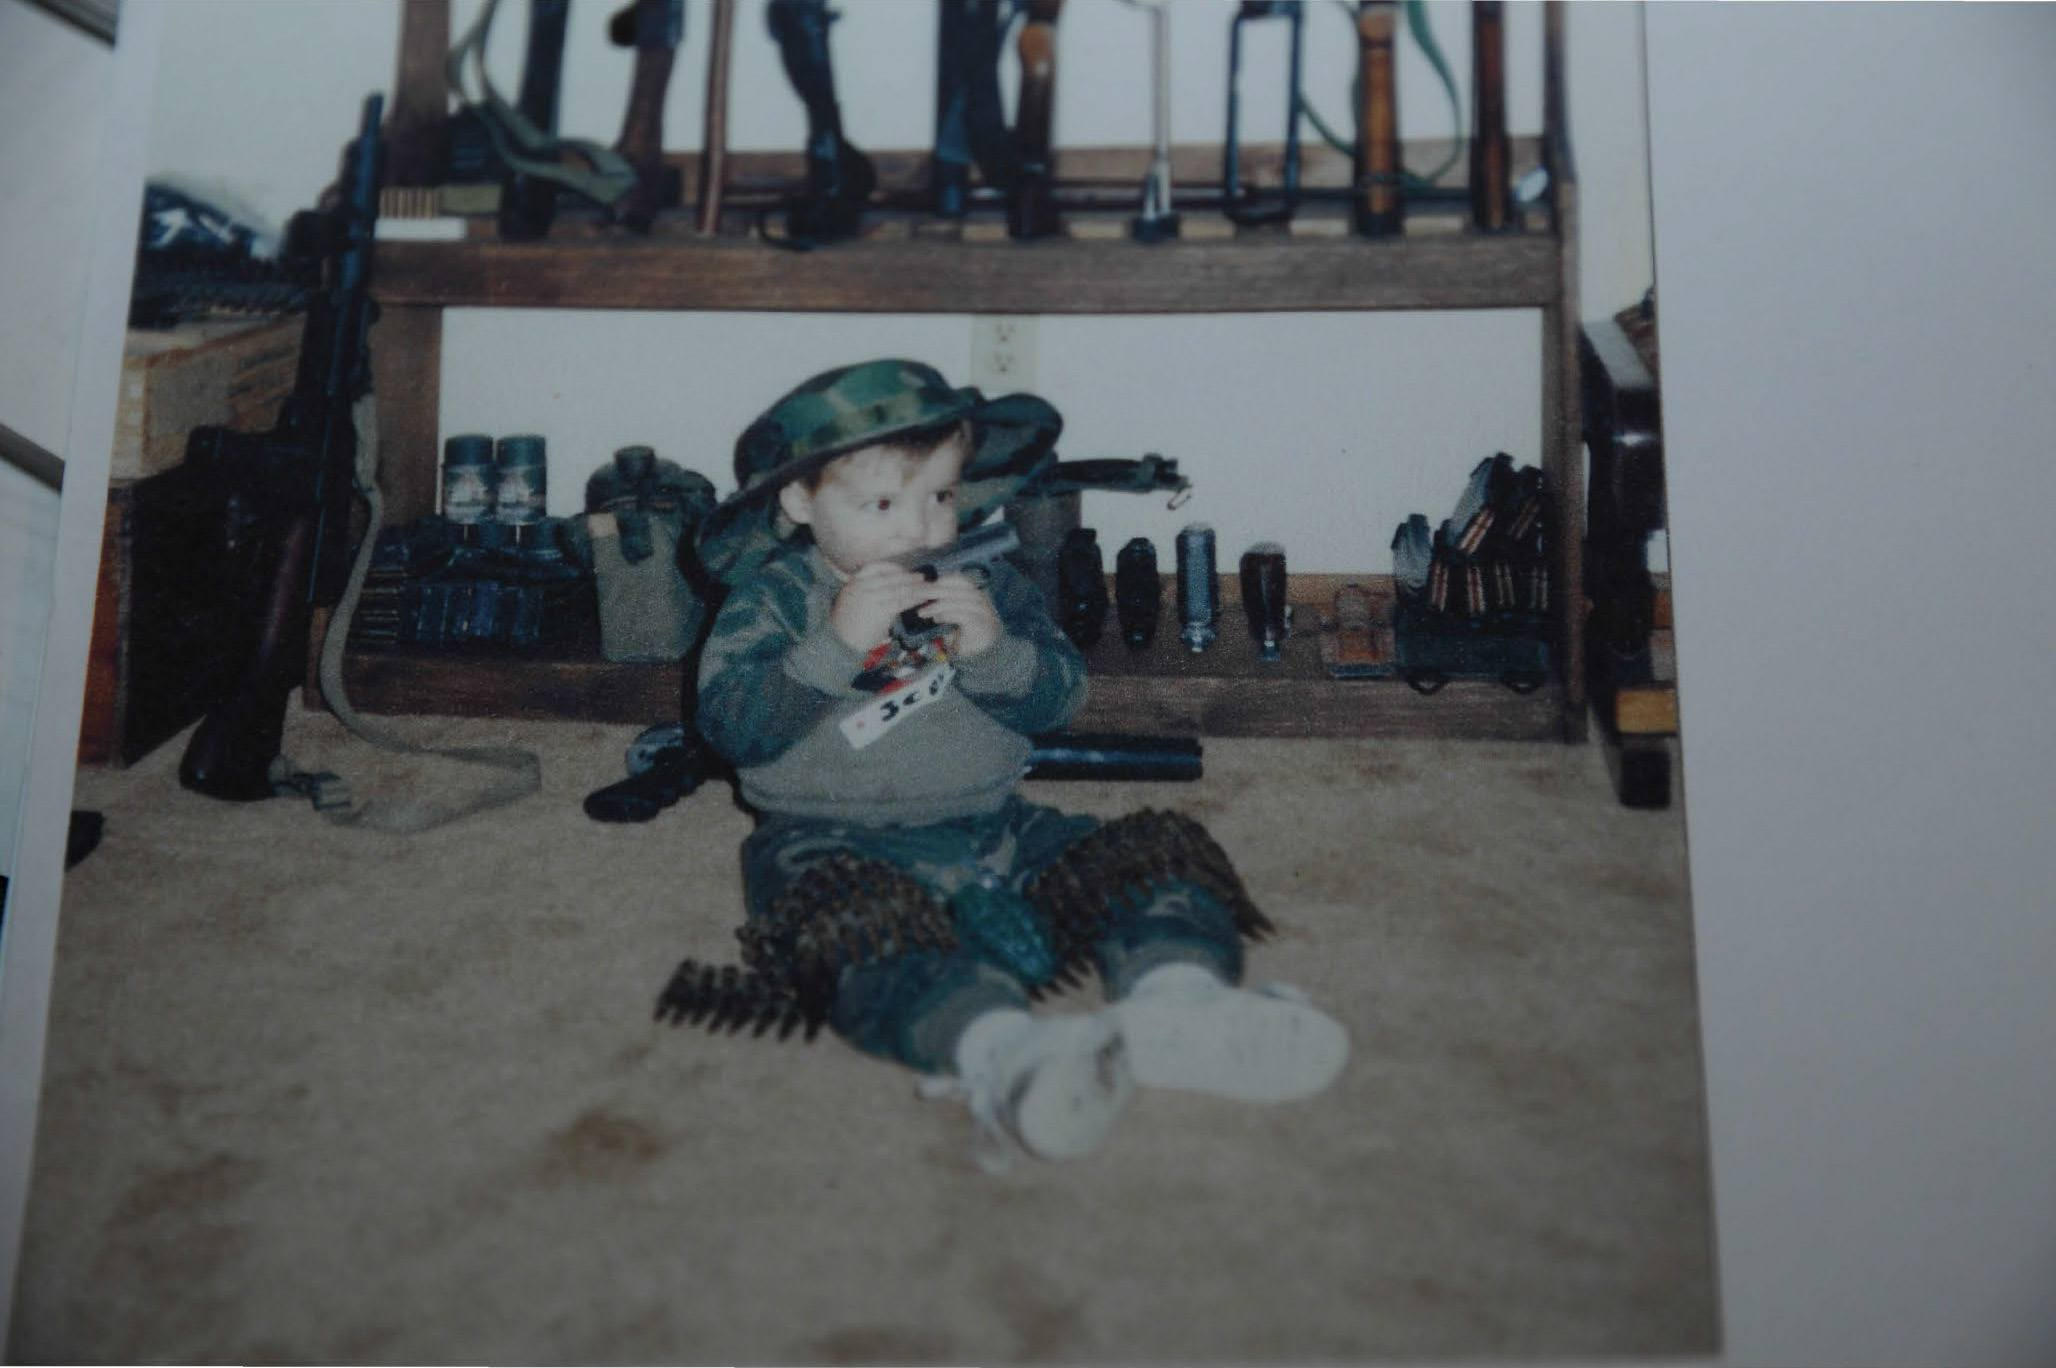 a child adam lanza wearing an ammunition belt by a rack of guns